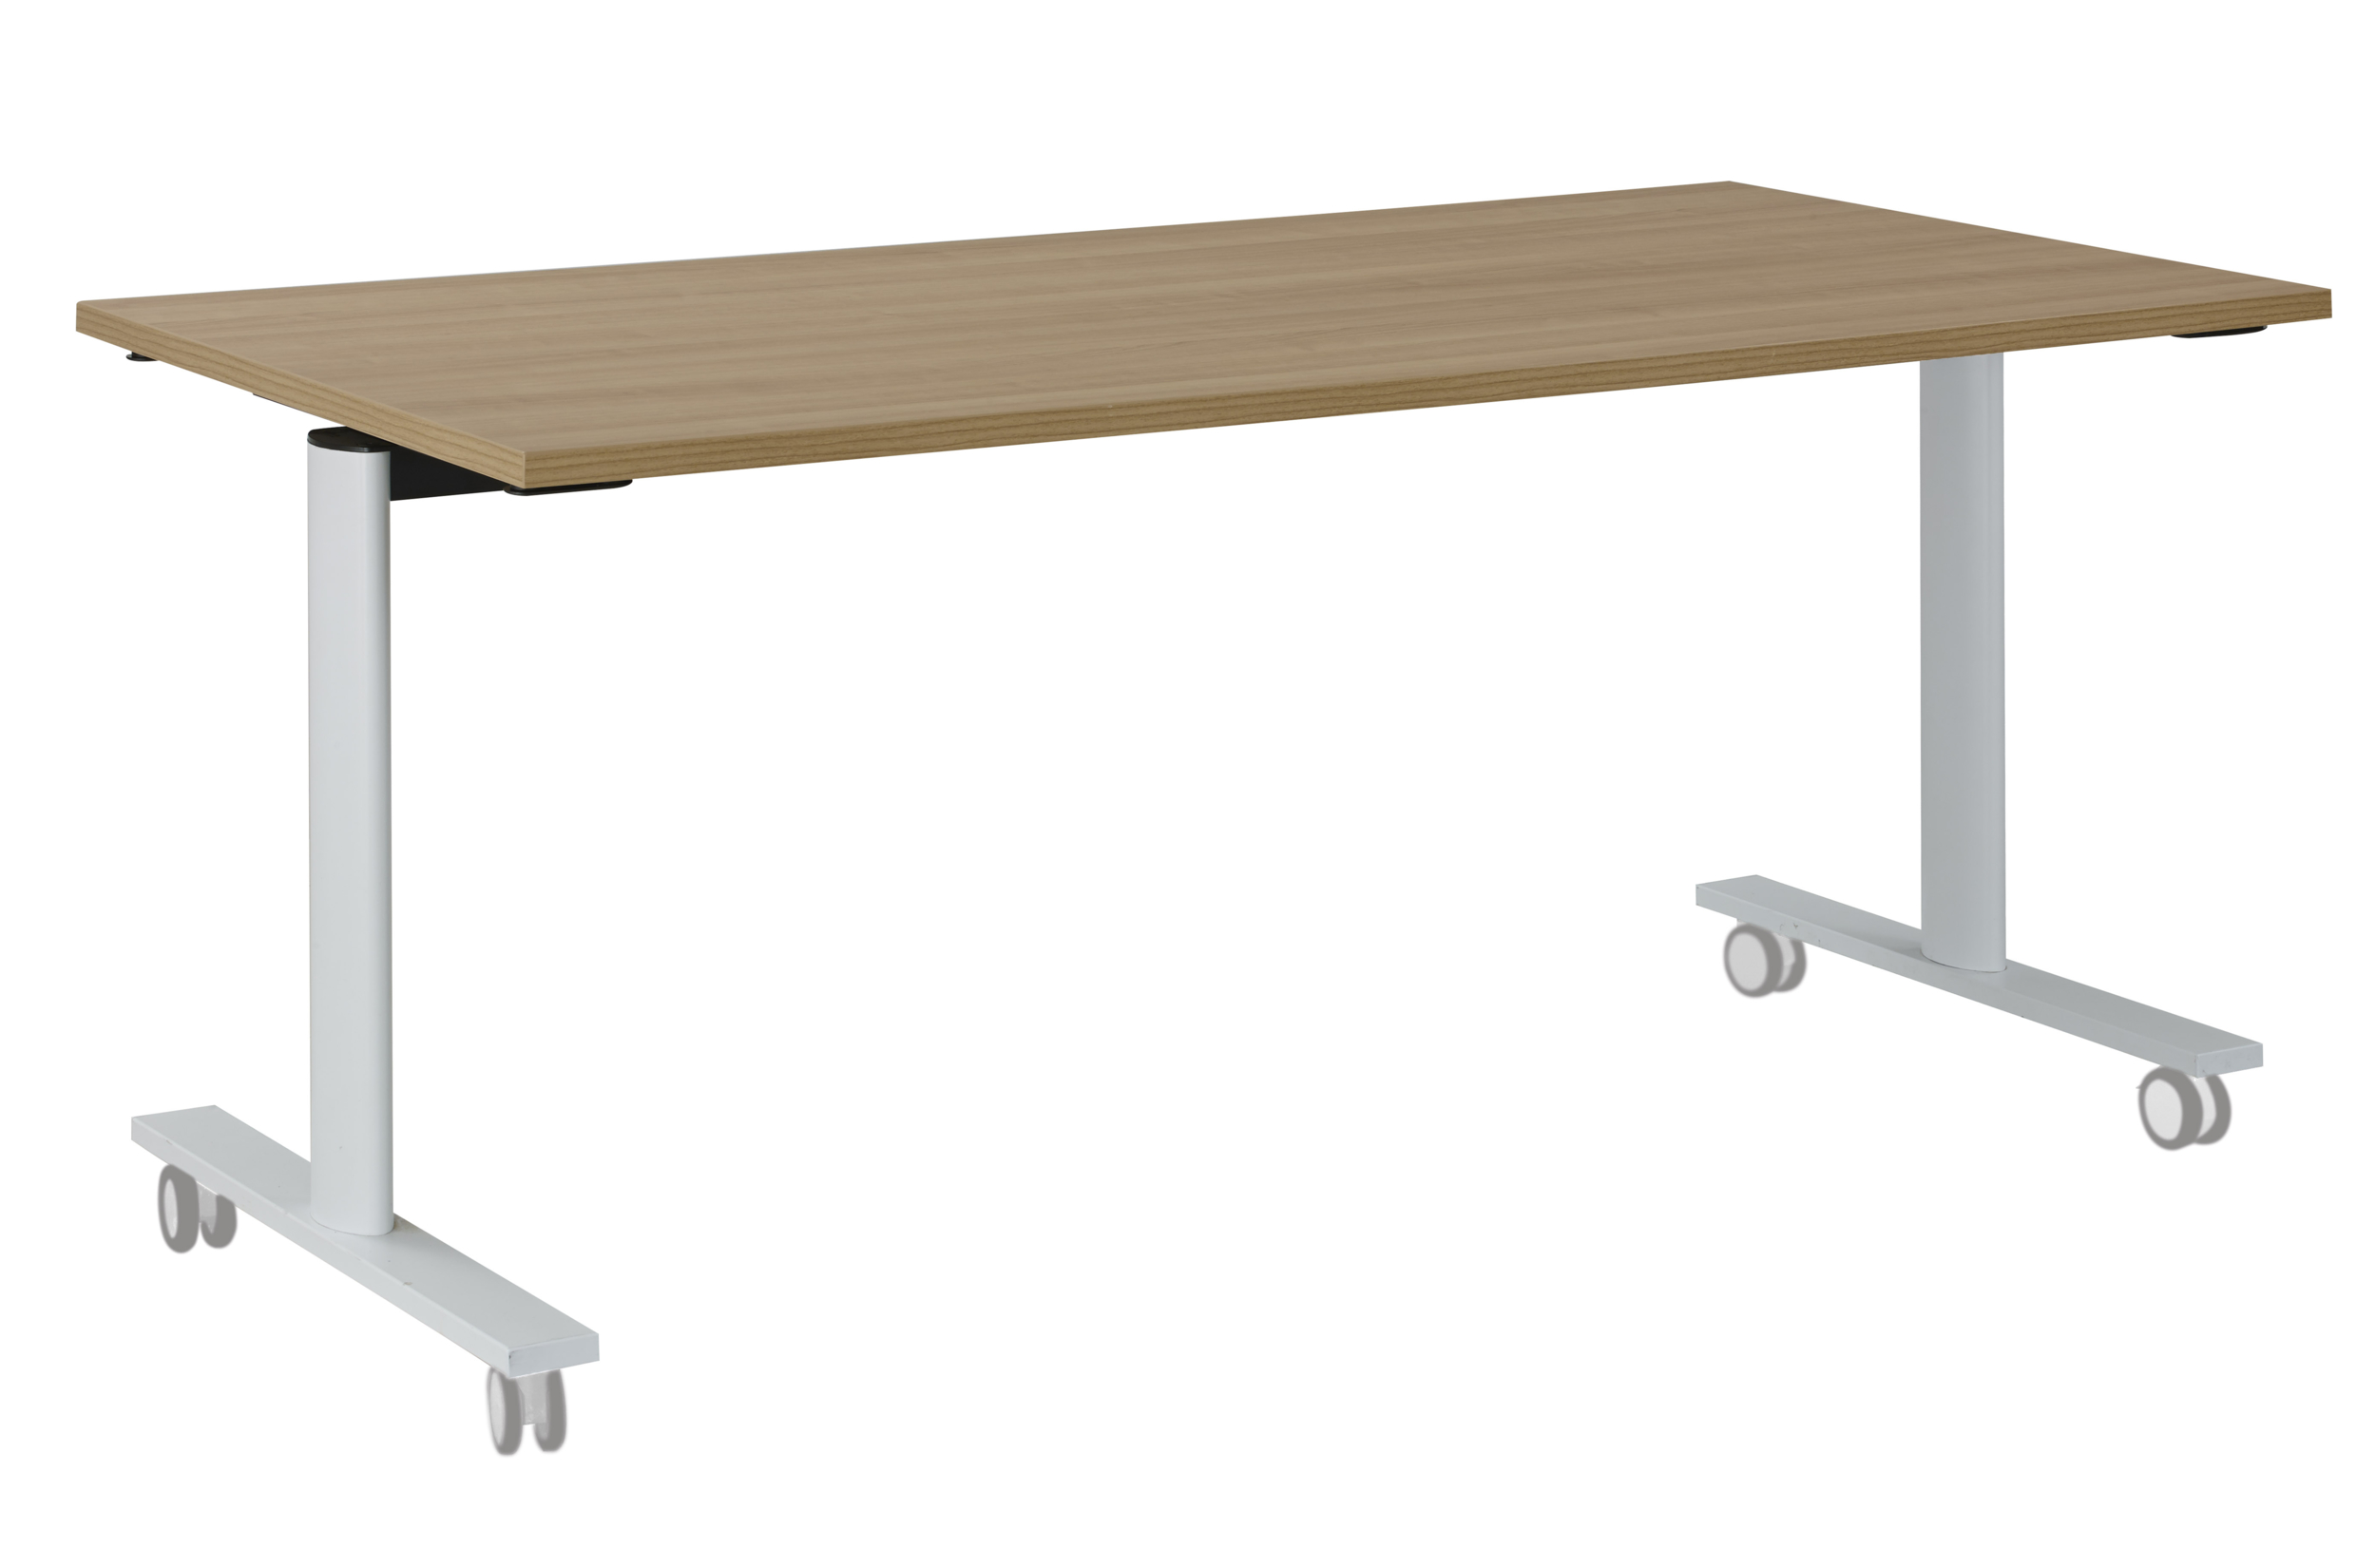 YES MERISIER PIEDS BLANC TABLE MOBILE ET RABATTABLE 160CM